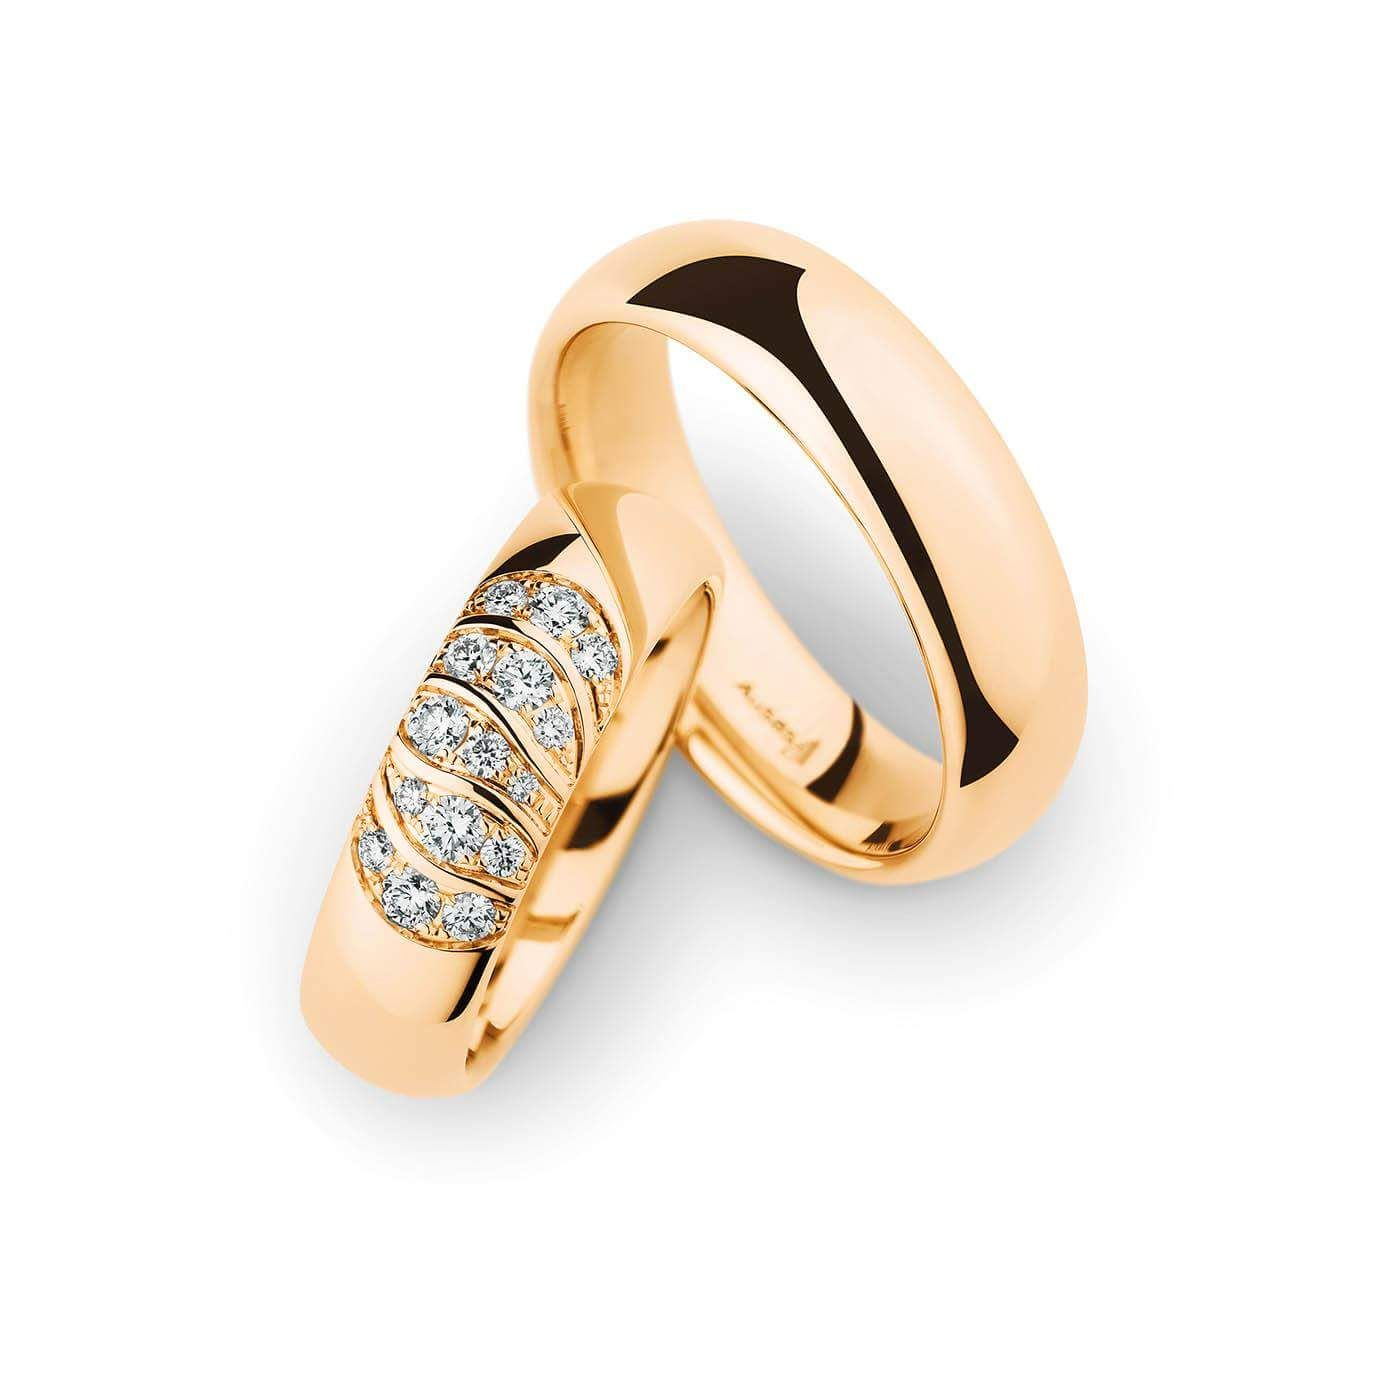 64 gorgeous wedding ring sets his and her that might be even